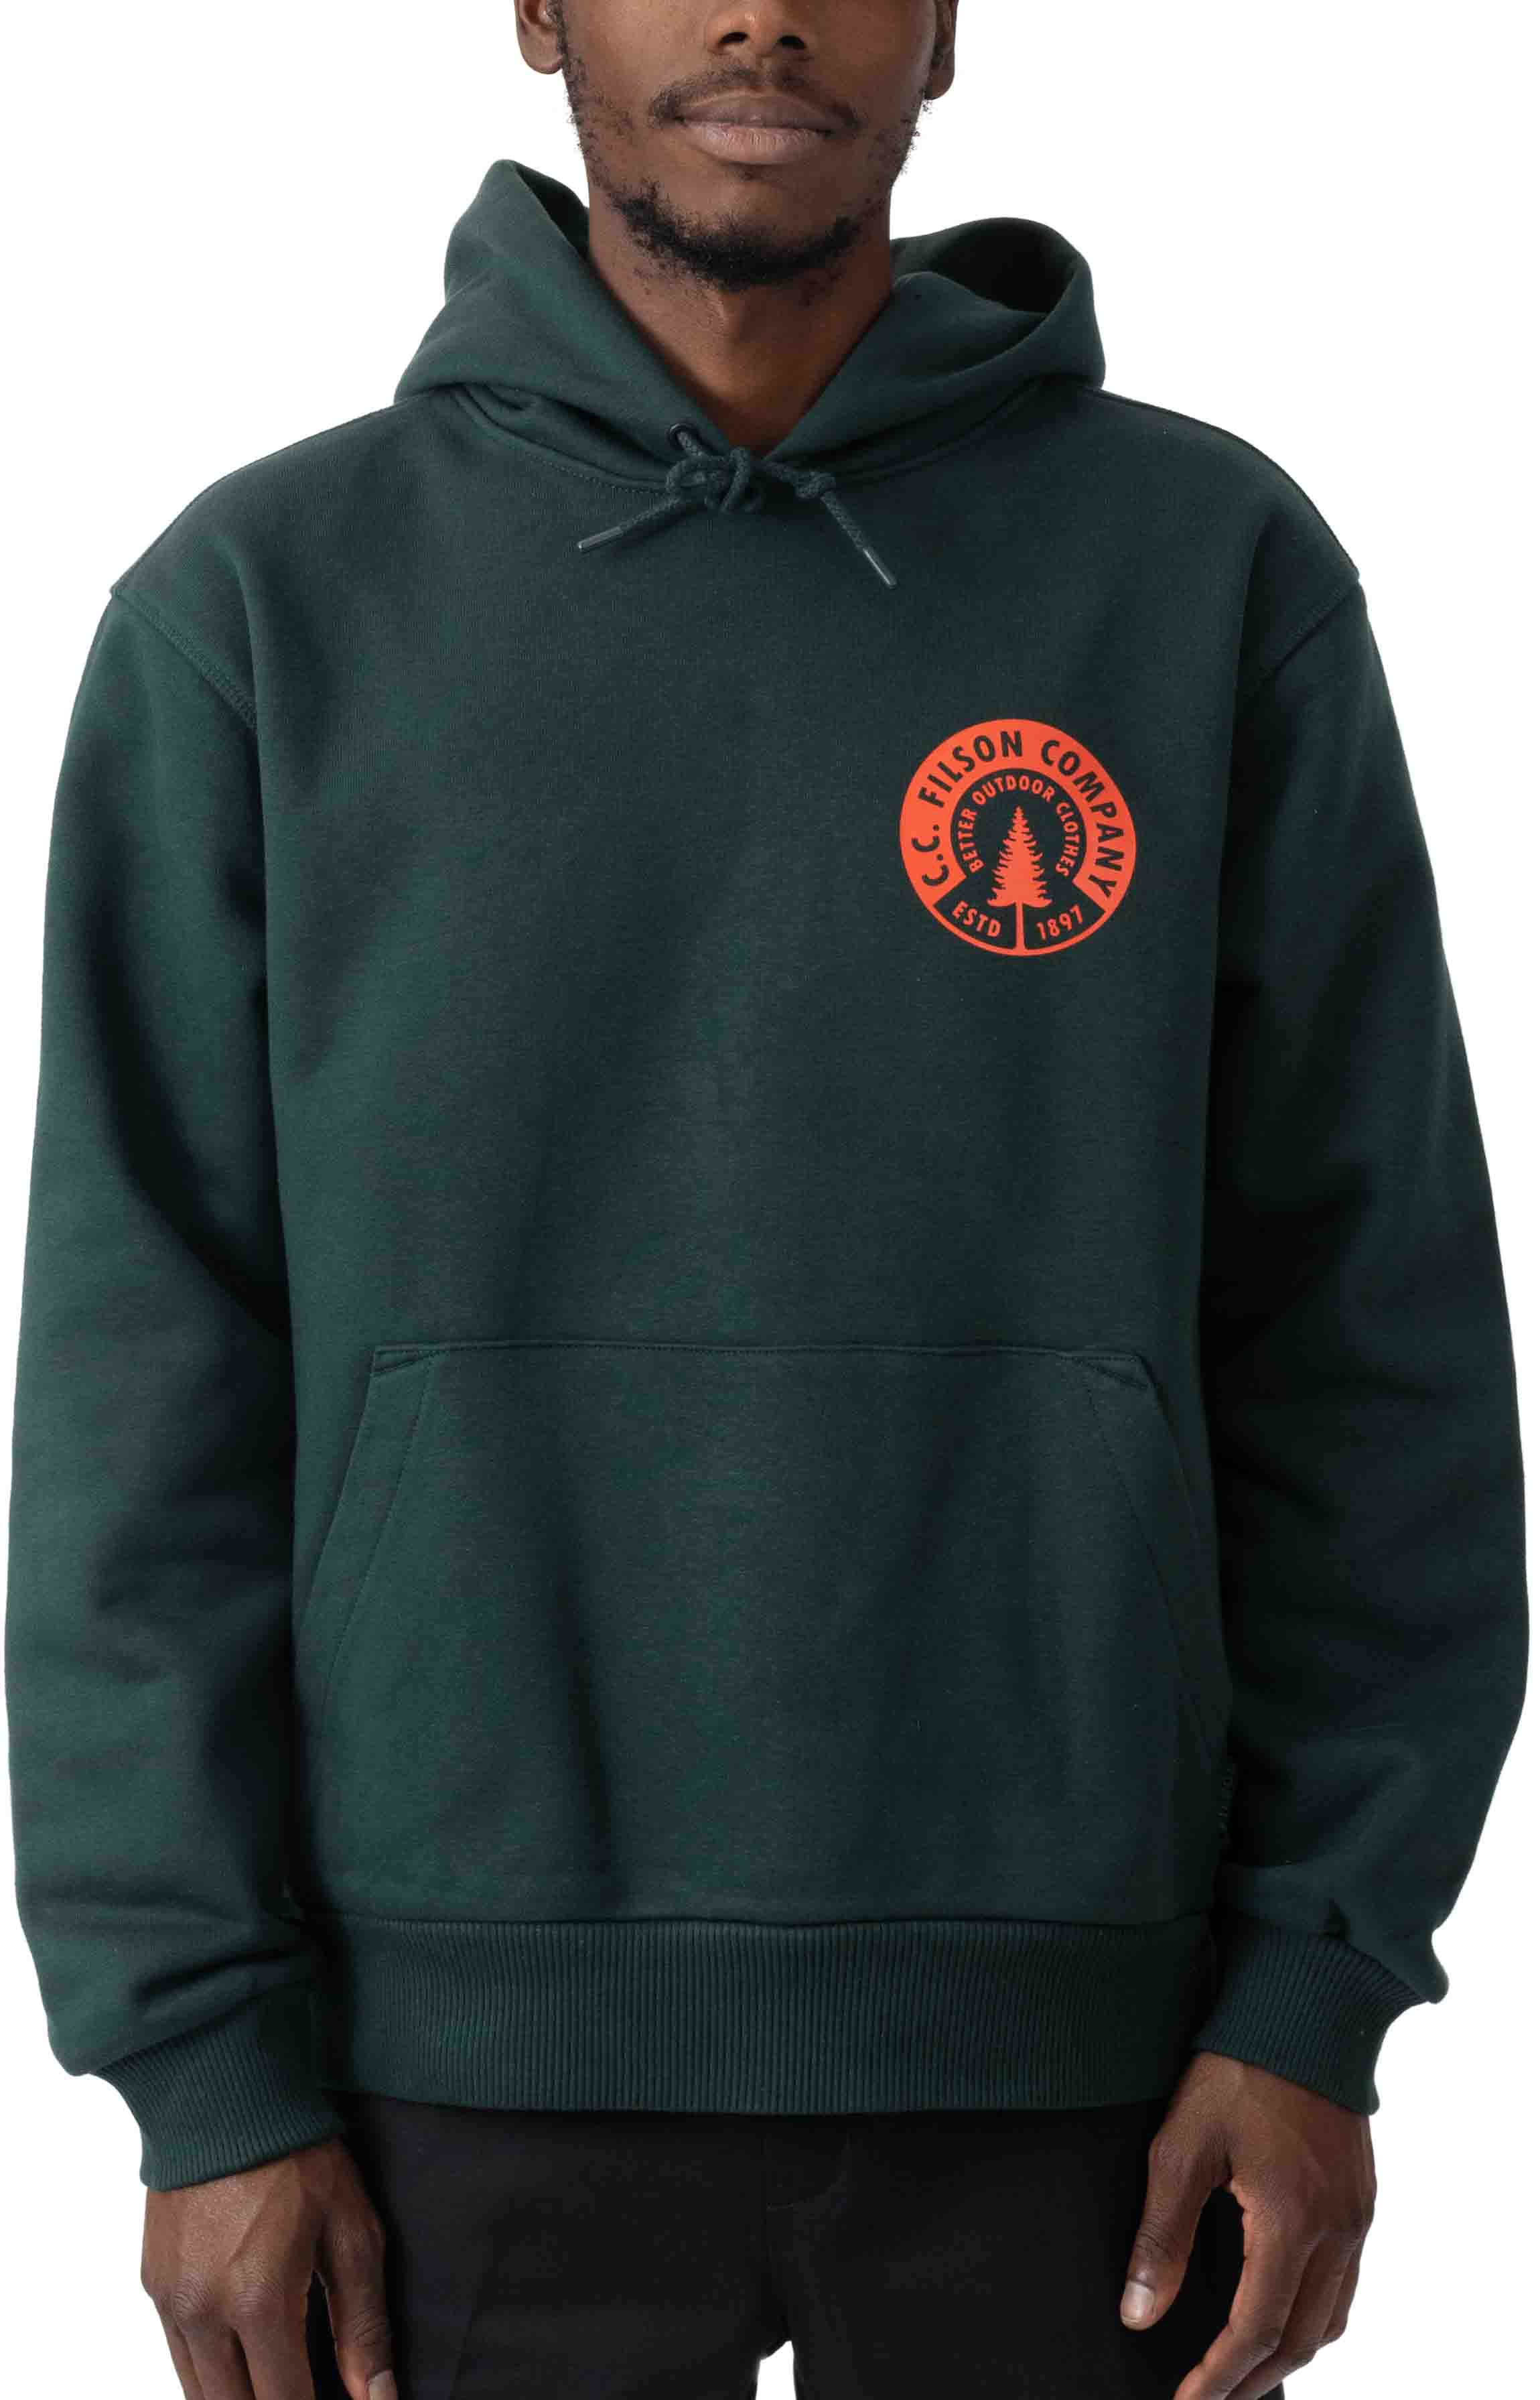 Prospector Graphic Pullover Hoodie - Green